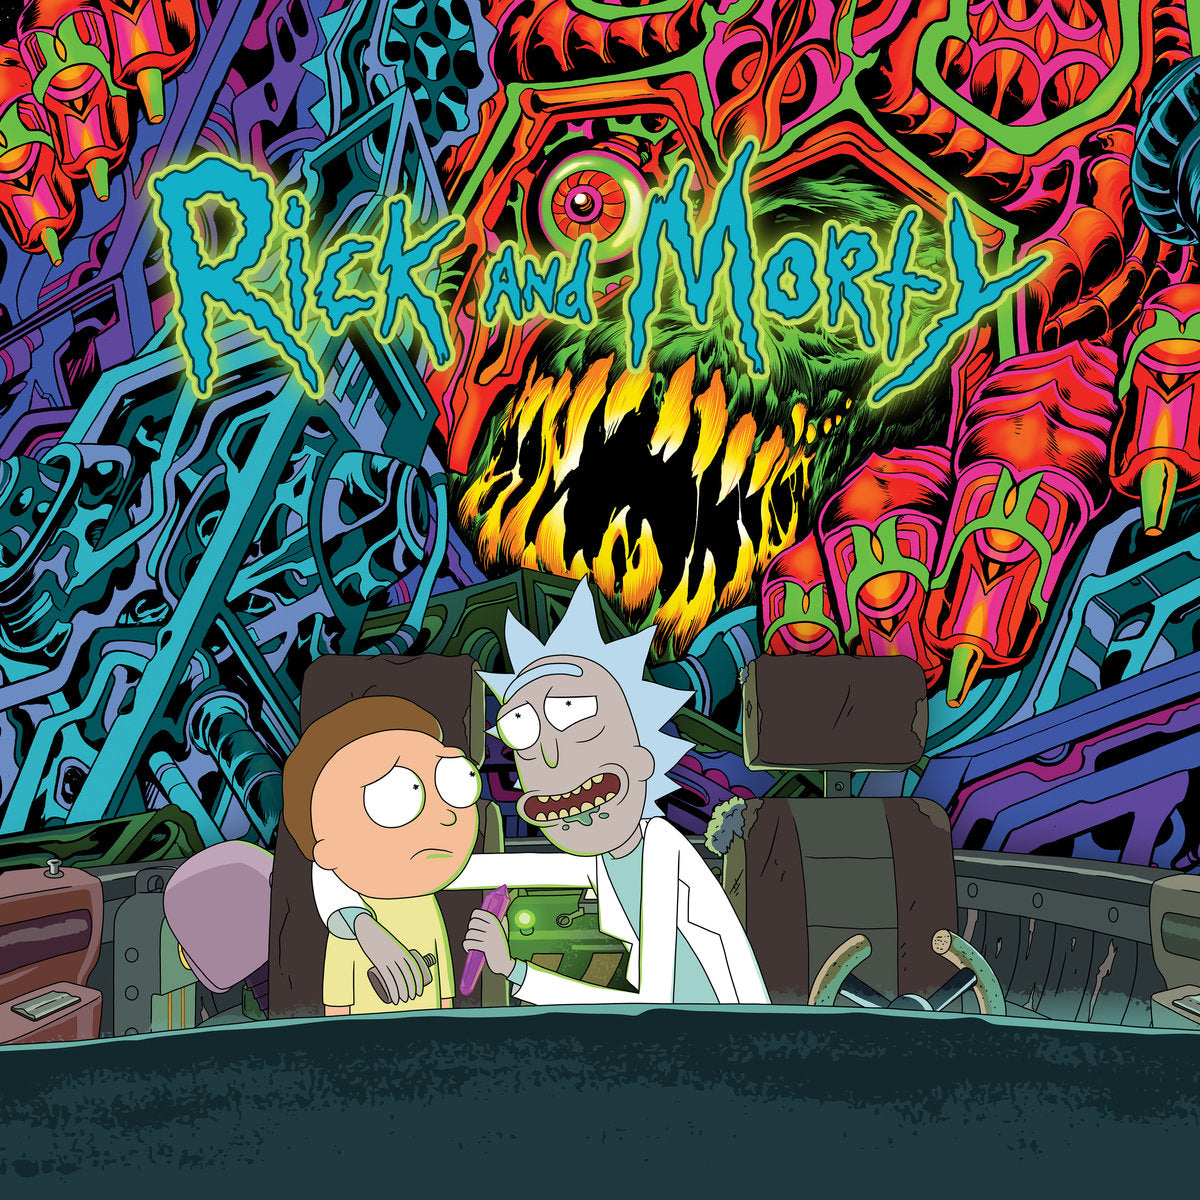 Rick & Morty - The Rick & Morty Soundtrack 2LP (Ltd Loser Edition)